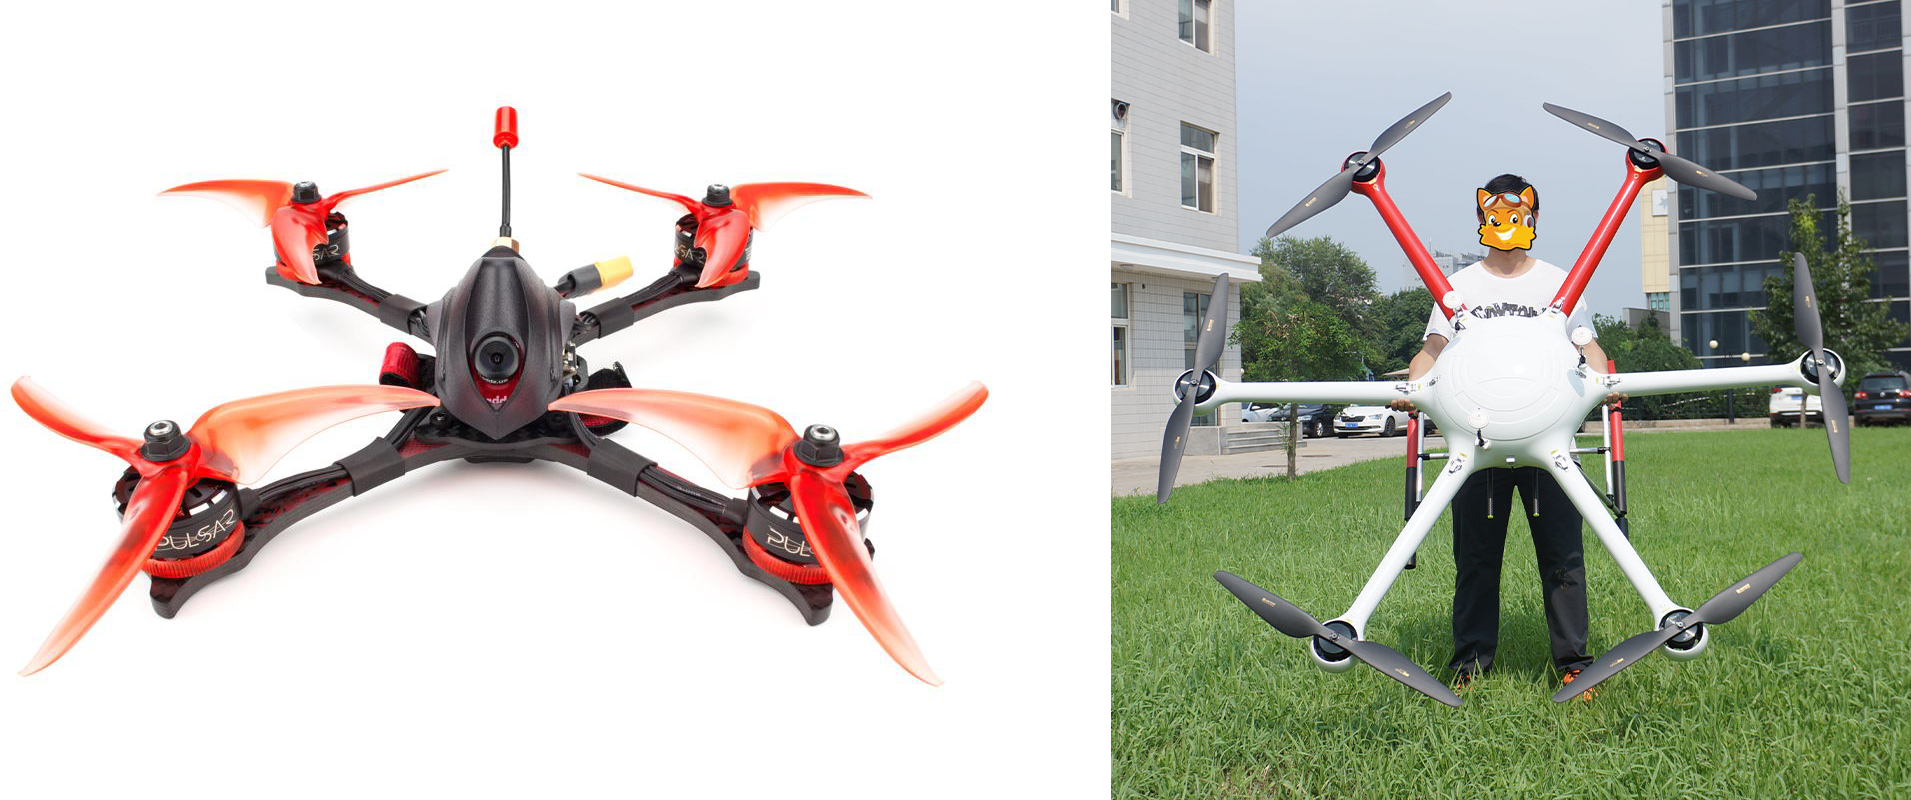 Poles in small vs. large drone motor